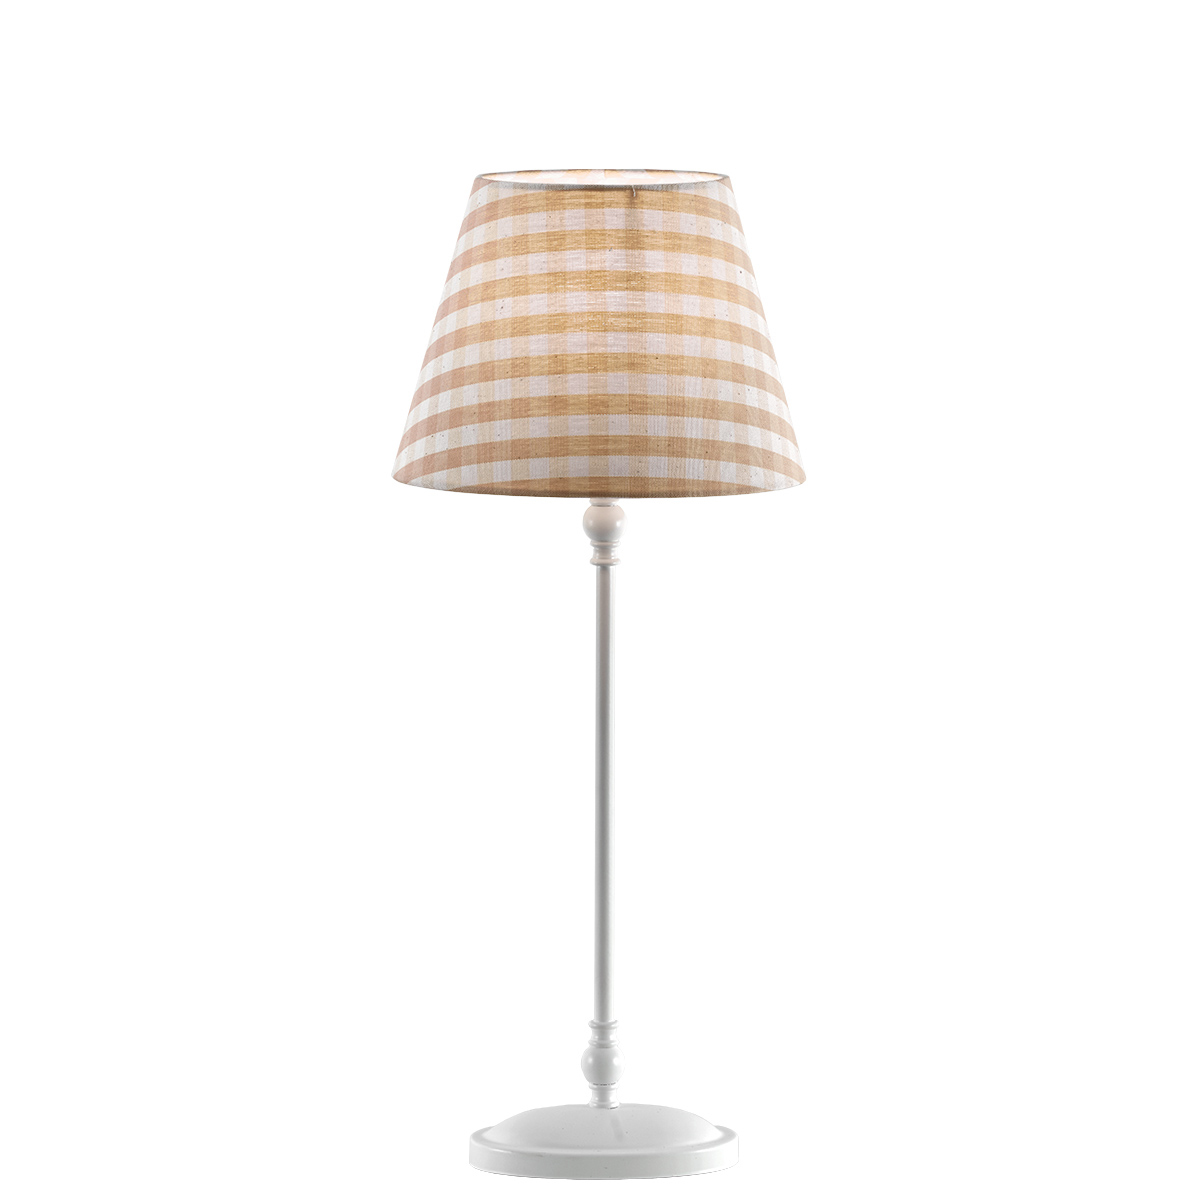 Πορτατίφ BIANCO table lamp